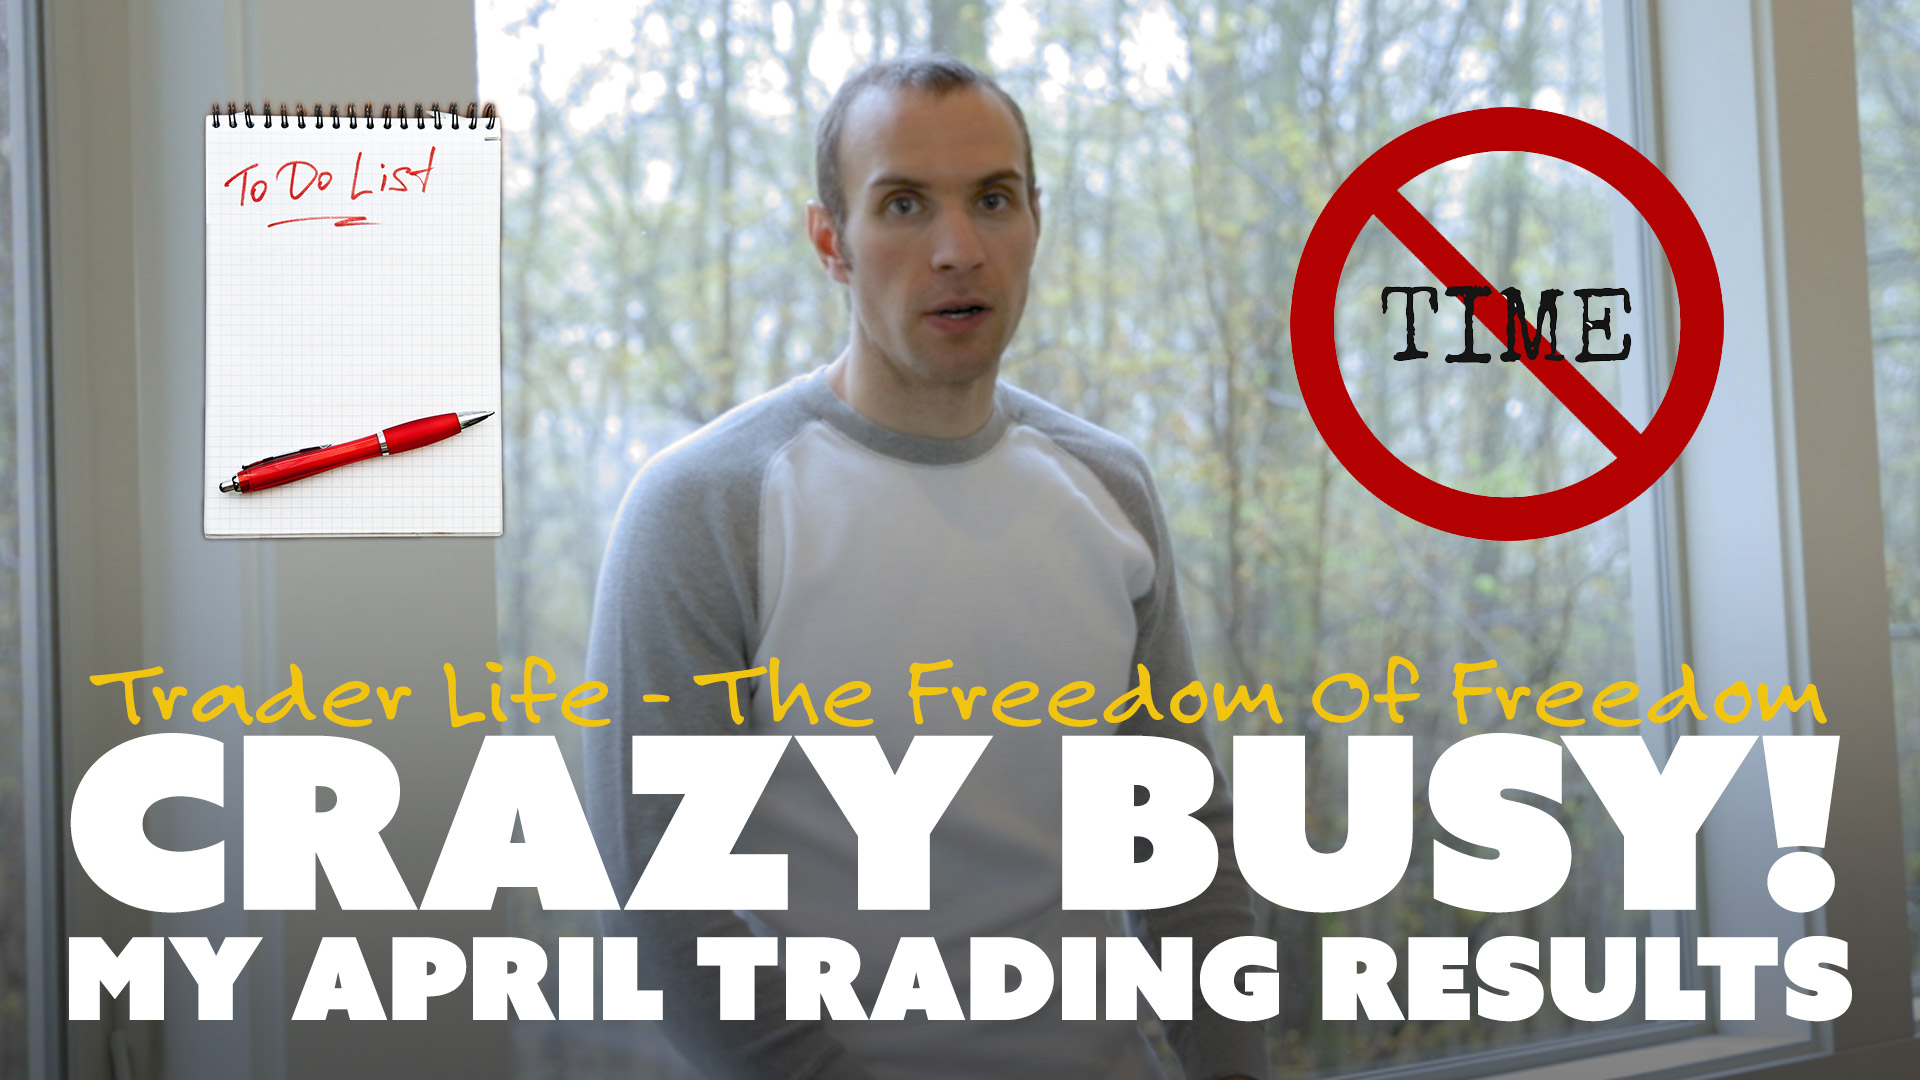 Crazy Busy! My April Trading Results.